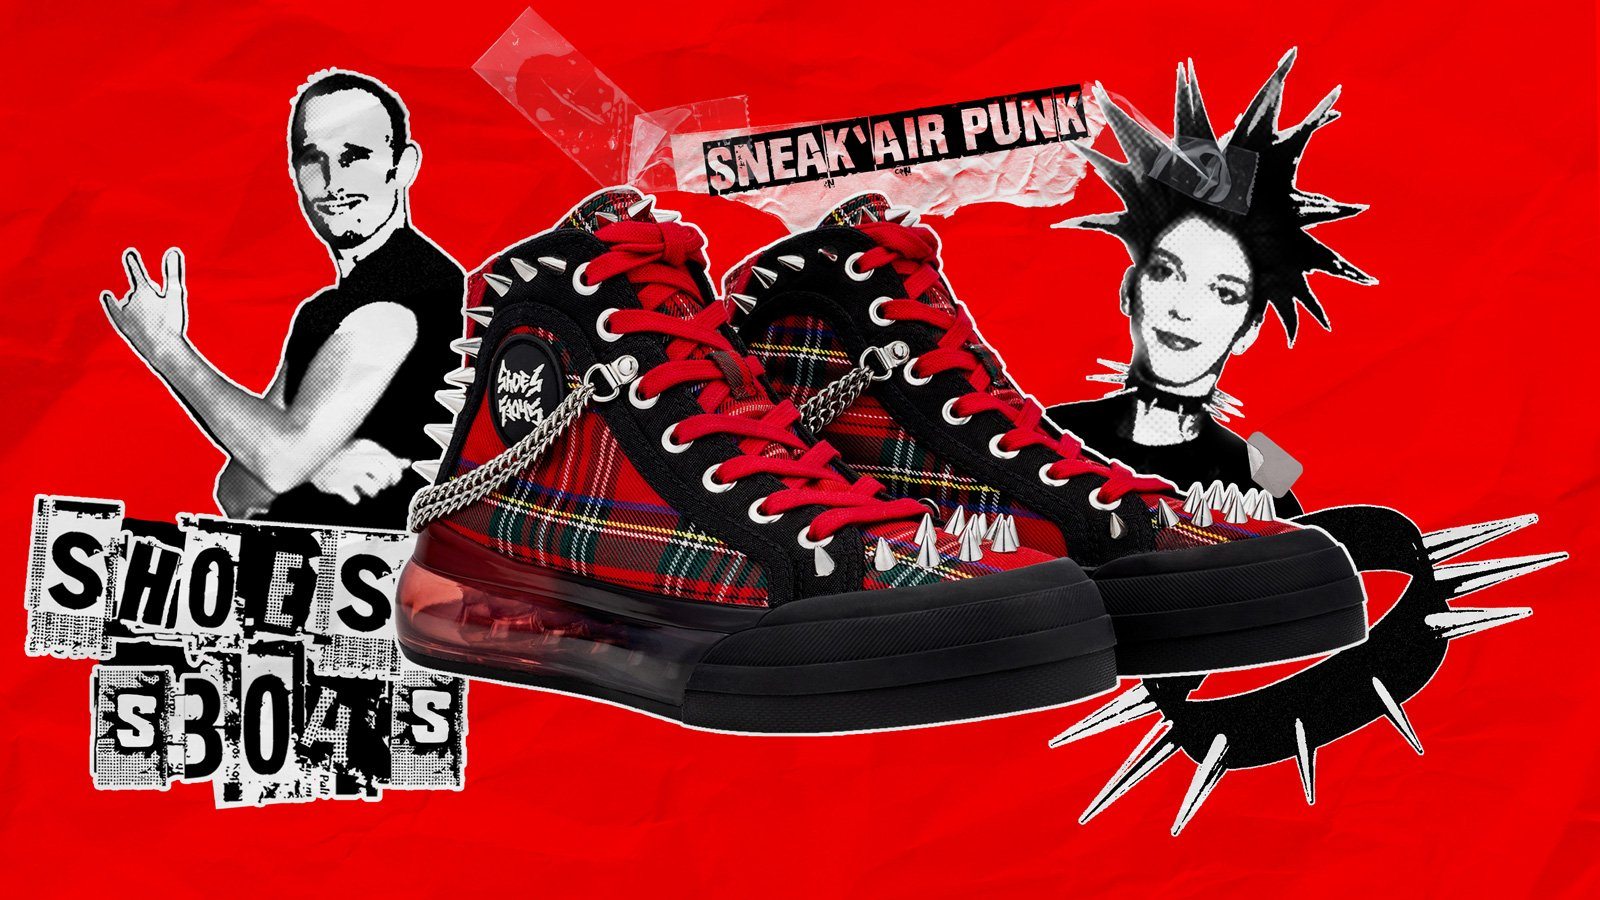 SHOES 53045 Sneak'Air Punk Campaign